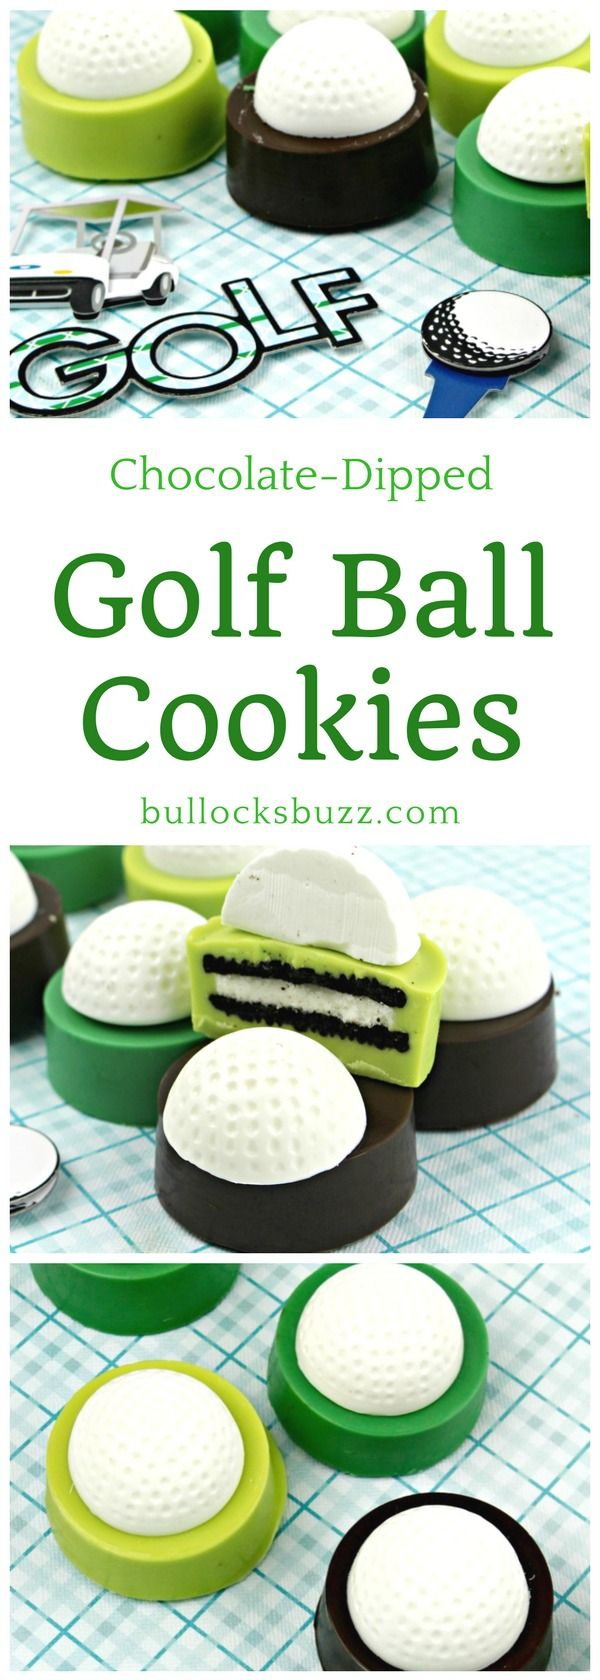 Sink your teeth into these delicious chocolate-dipped Golf Ball Cookies - they're sure to fit your golf-lover to a tee!